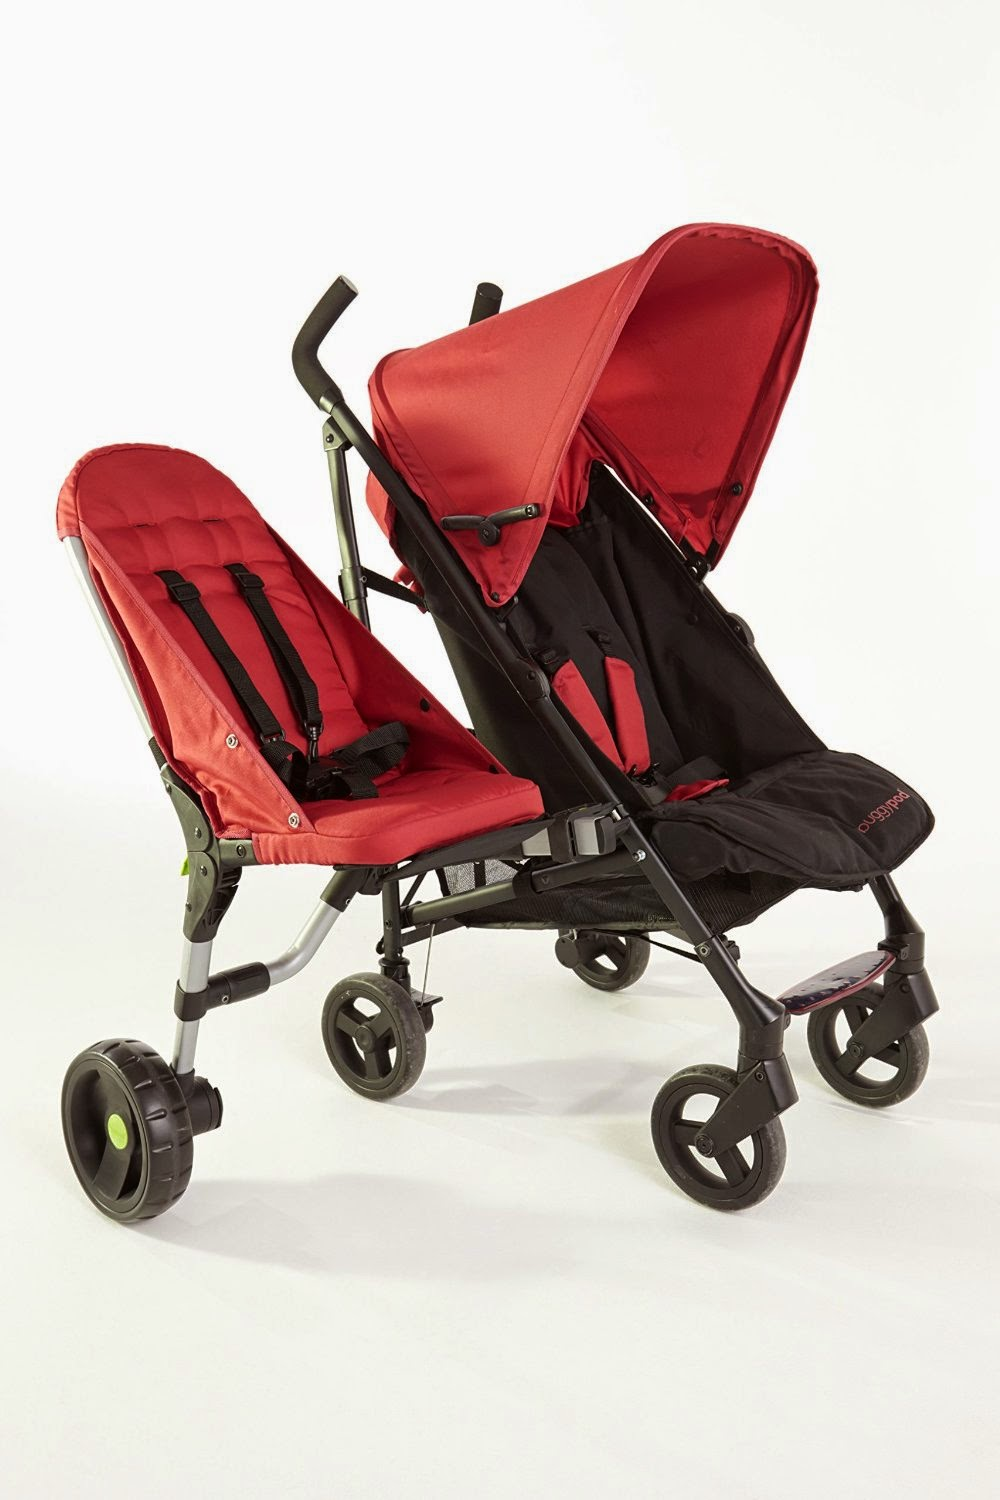 Alternativas para pasear con dos beb s de distinta edad for Coches con silla para carro